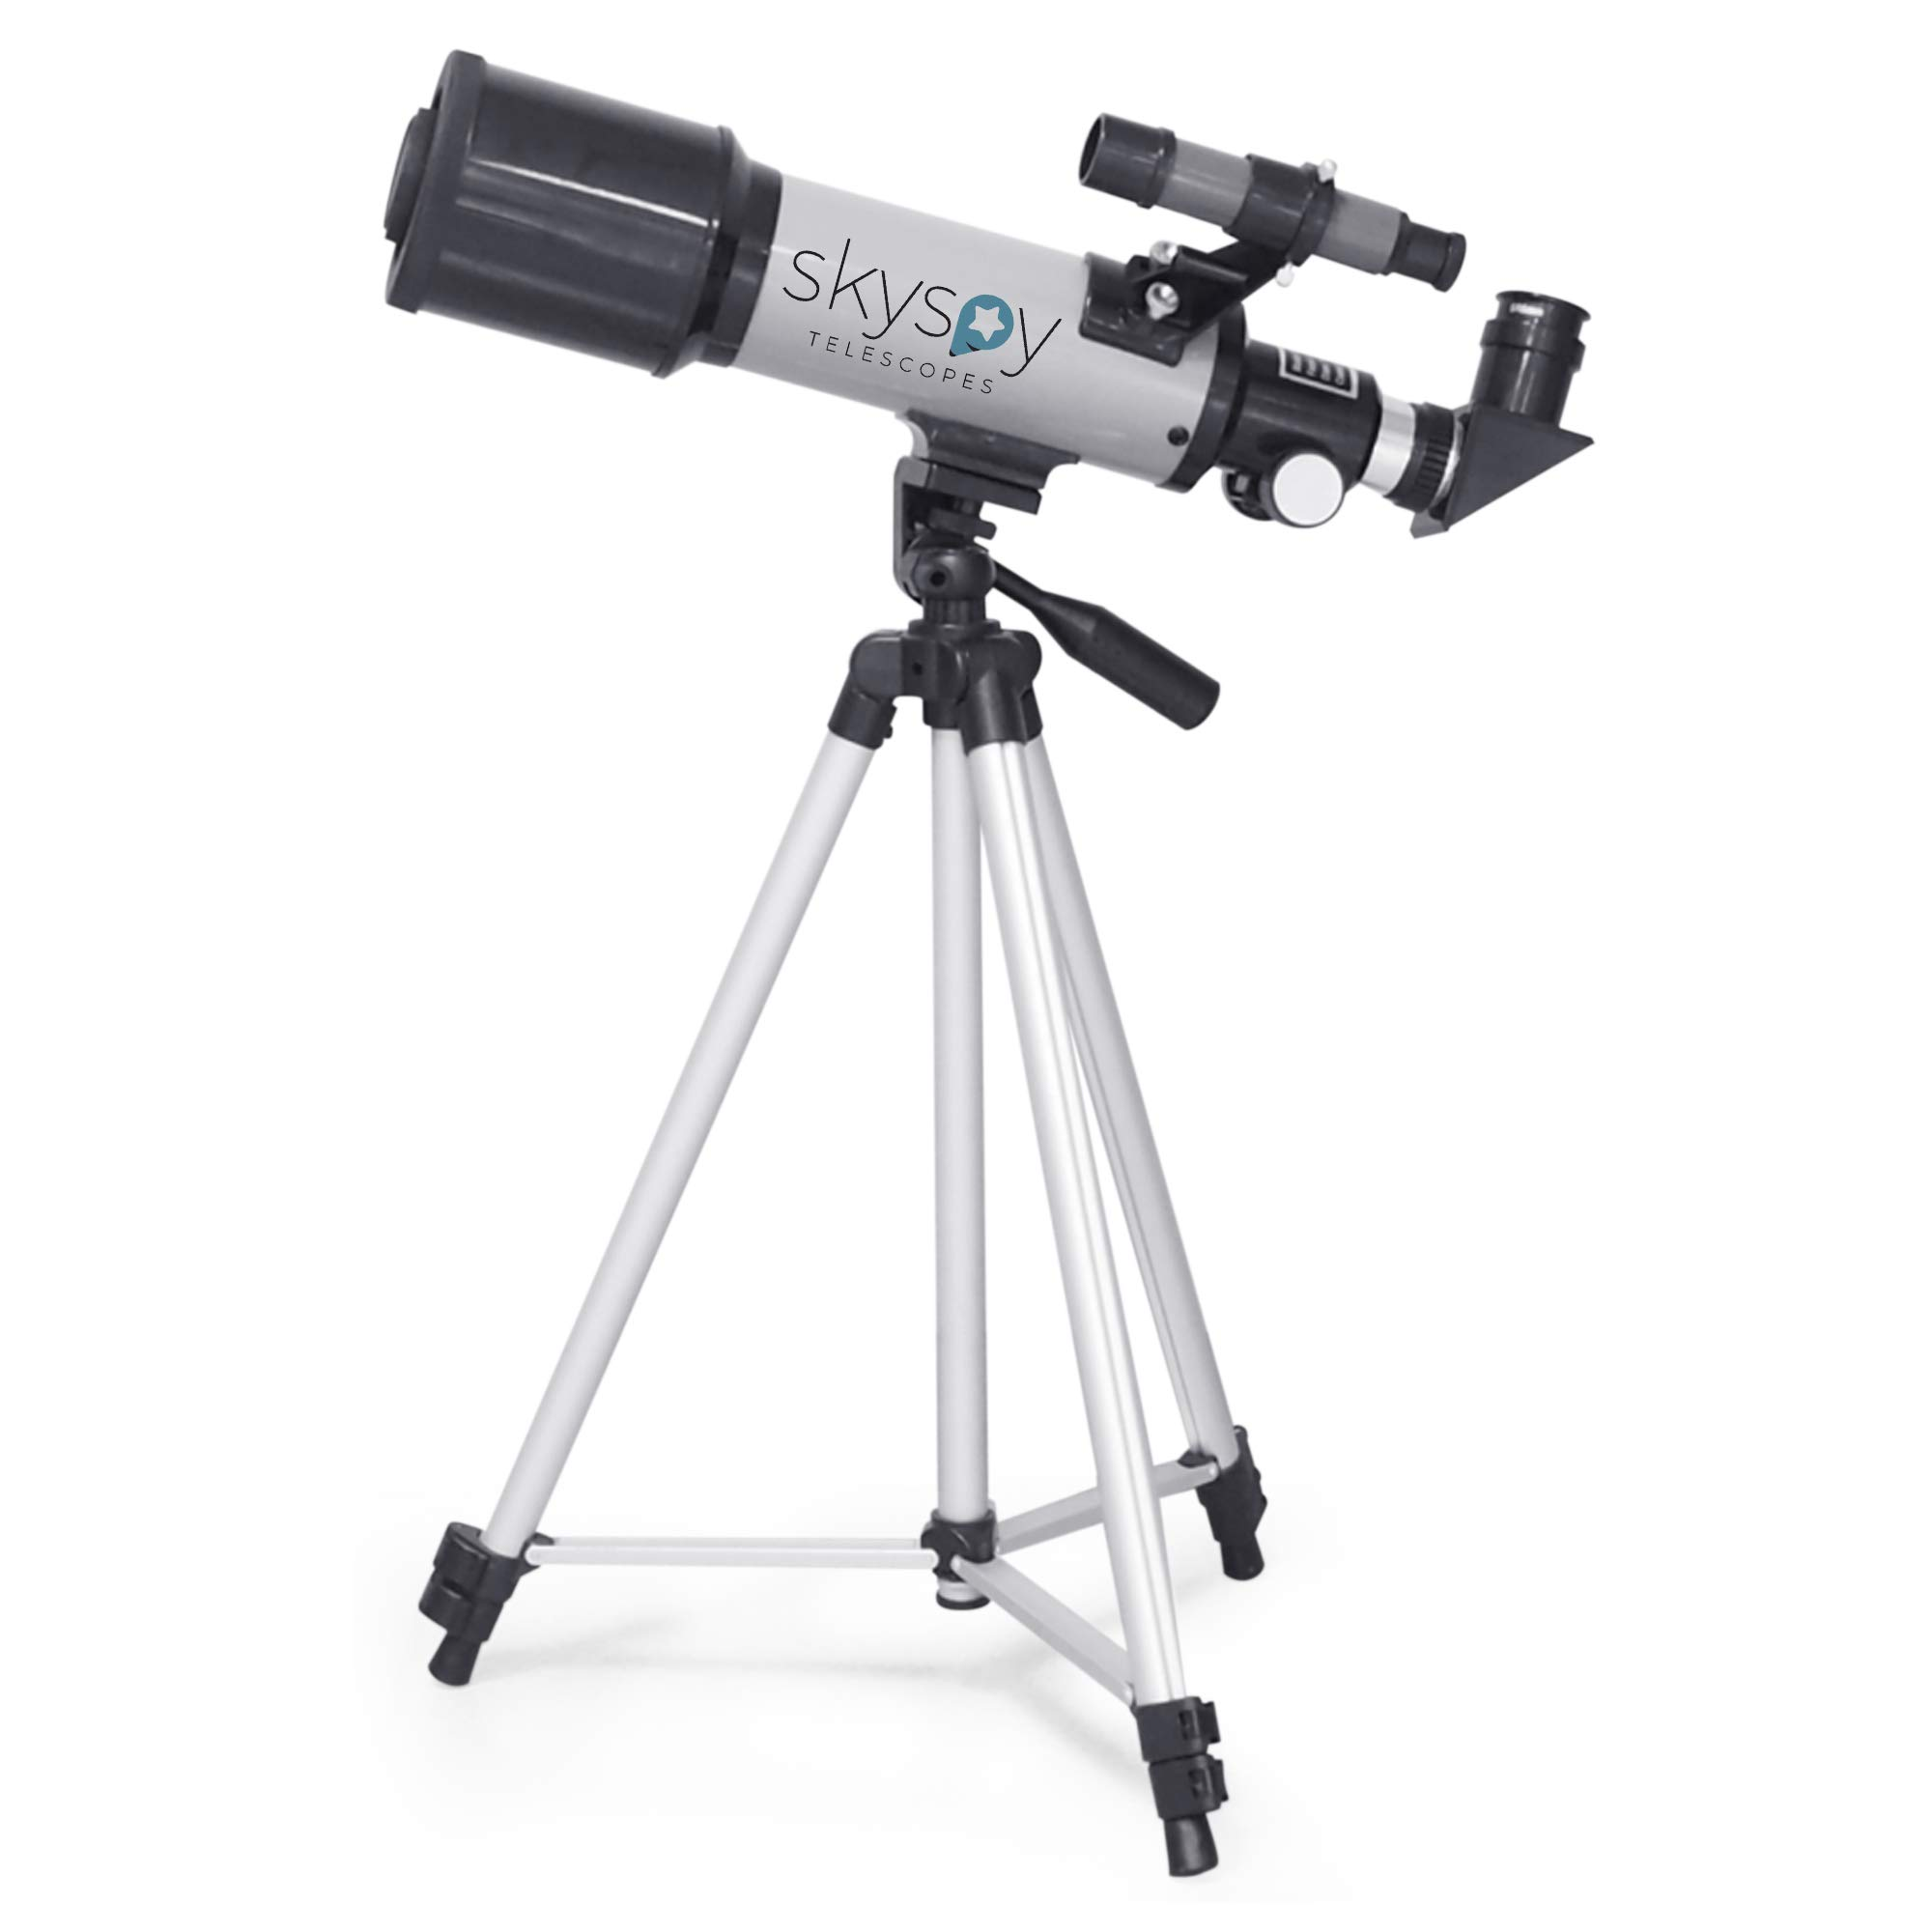 SkySpy 70mm Refractor Telescope with Extra Long Sturdy Tripod & Finder Scope, Portable with 3 Magnification eyepieces, Moon Mirror & Carrying case Great for Kids and Beginning Astronomers by SkySpy Telescope